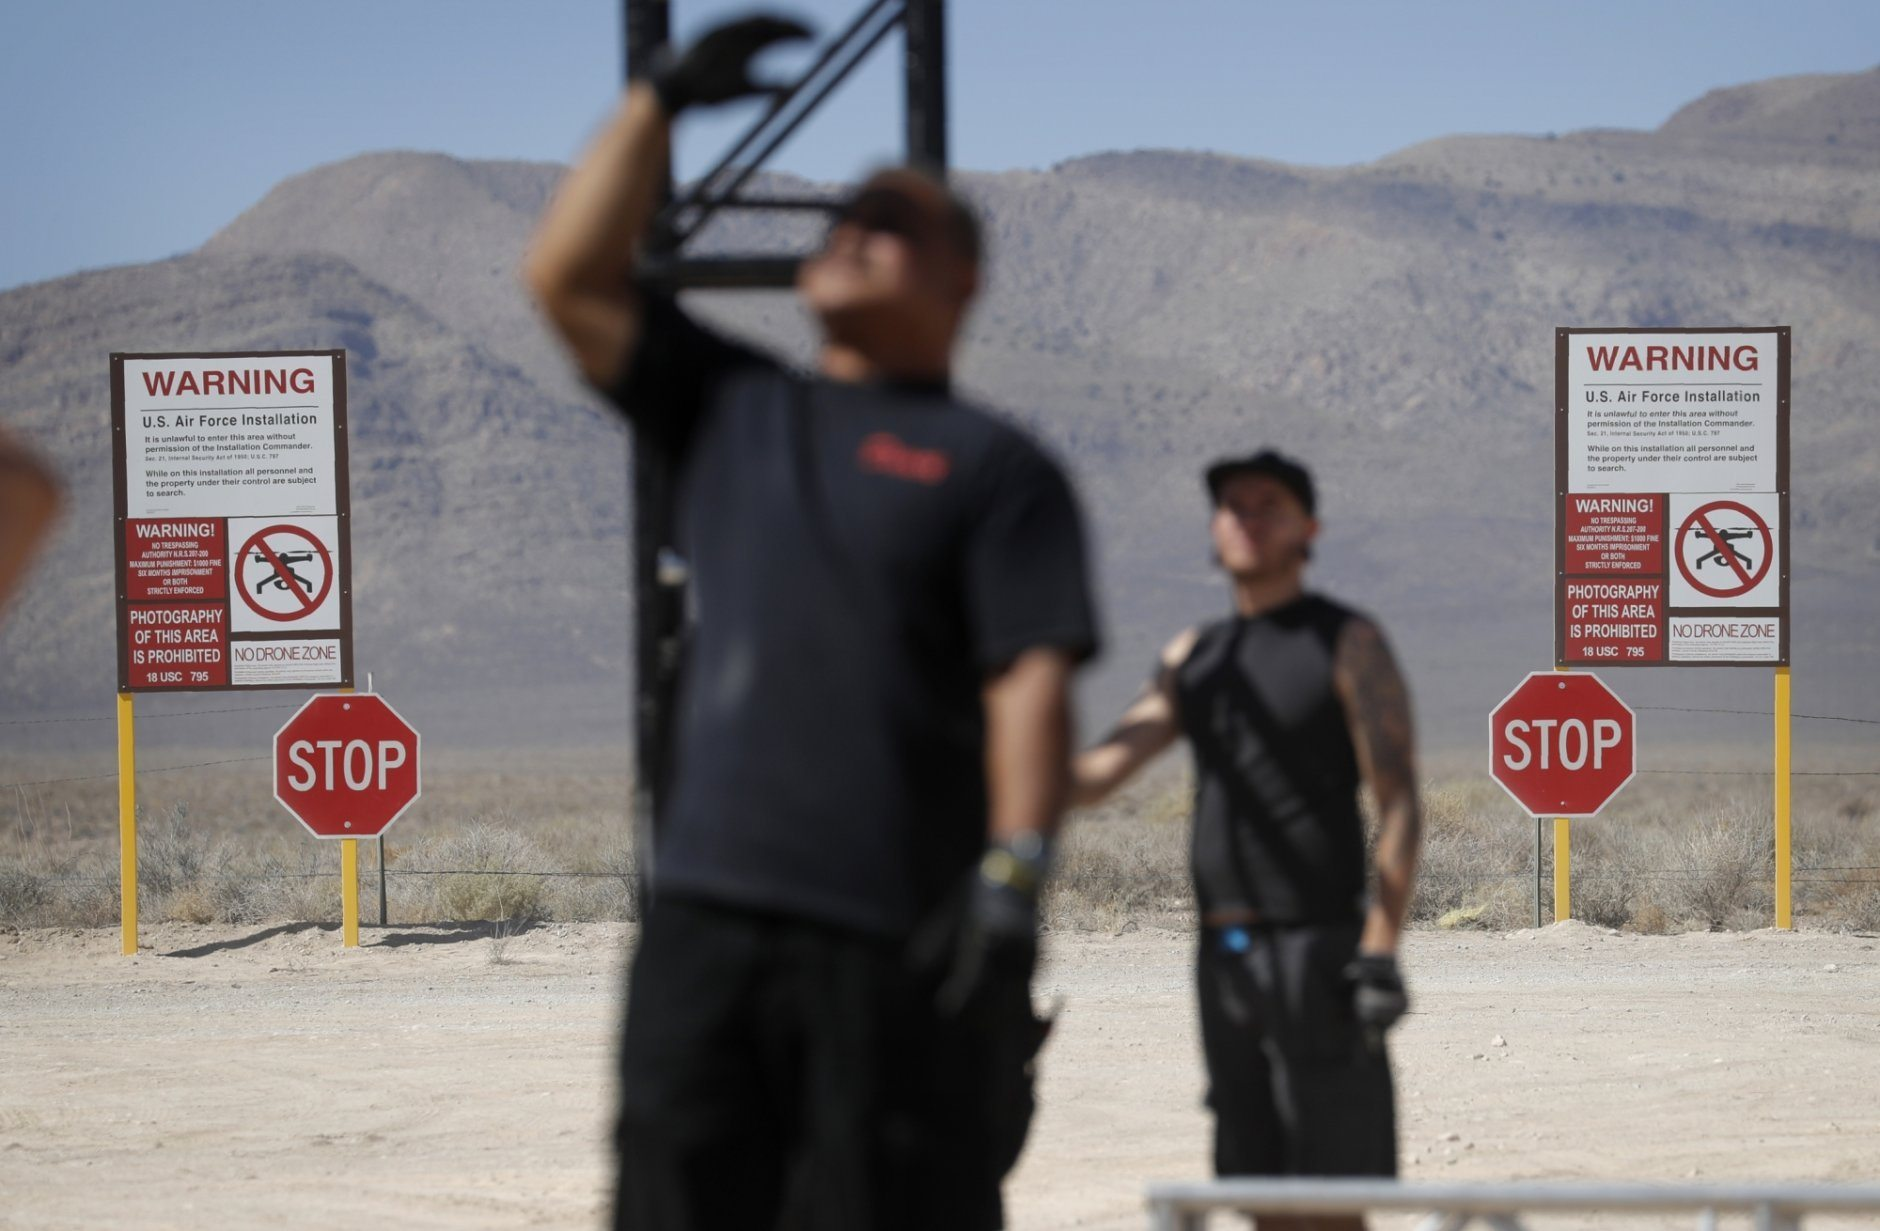 "Workers erect a stage near replica Area 51 gate signs at the Alien Research Center, Wednesday, Sept. 18, 2019, in Hiko, Nev. No one knows what to expect, but lots of people are preparing for ""Storm Area 51"" in the Nevada desert. Neighbors, elected officials and experts say the craze sparked by an internet joke inviting people to """"see them aliens"" might become a cultural marker, a dud or something in-between. (AP Photo/John Locher)"